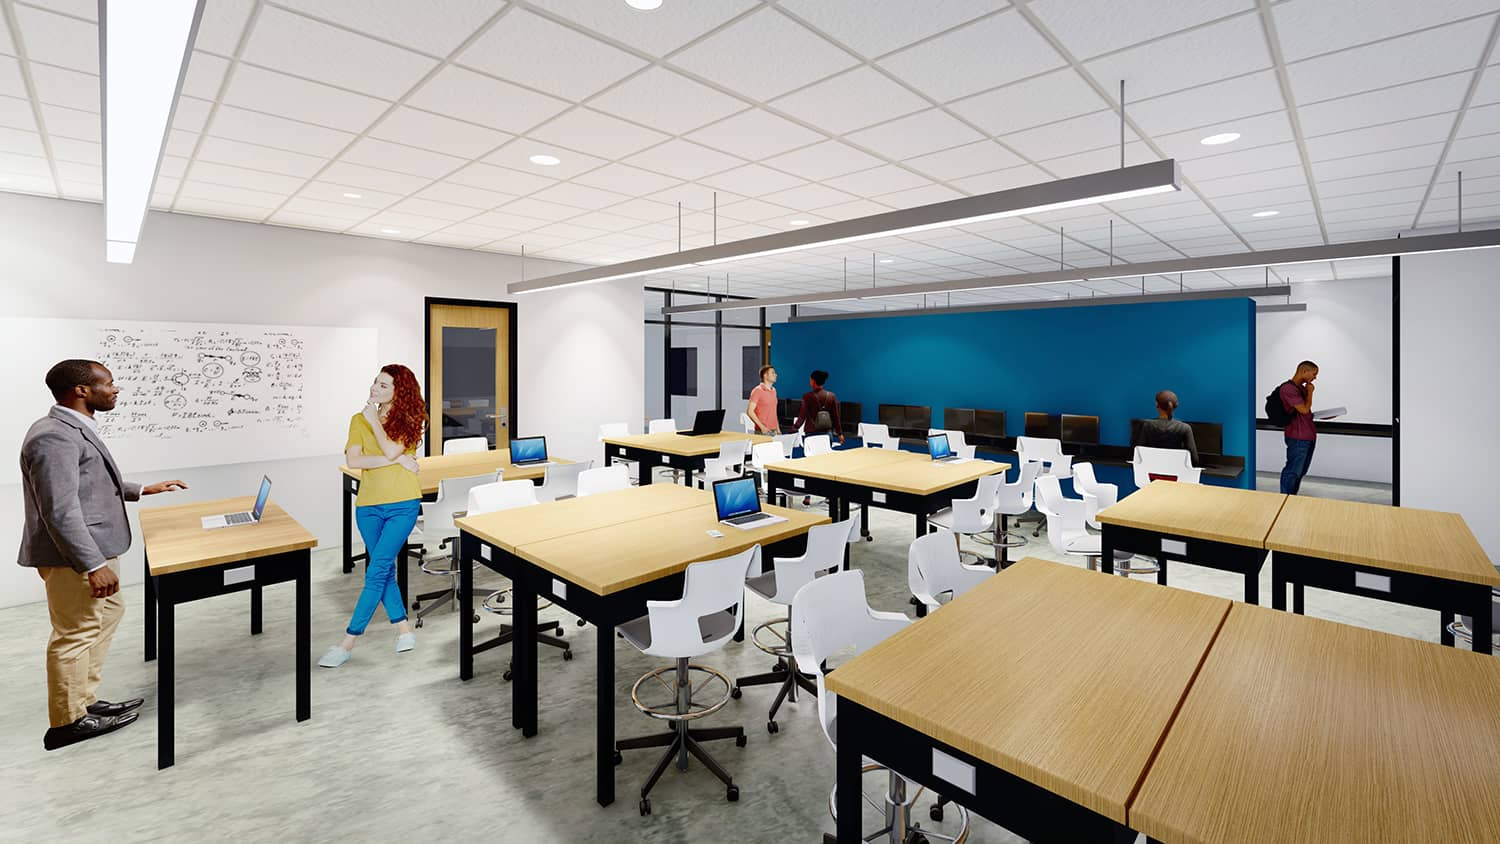 A senior design lab classroom with moveable furniture and a teal accent wall.